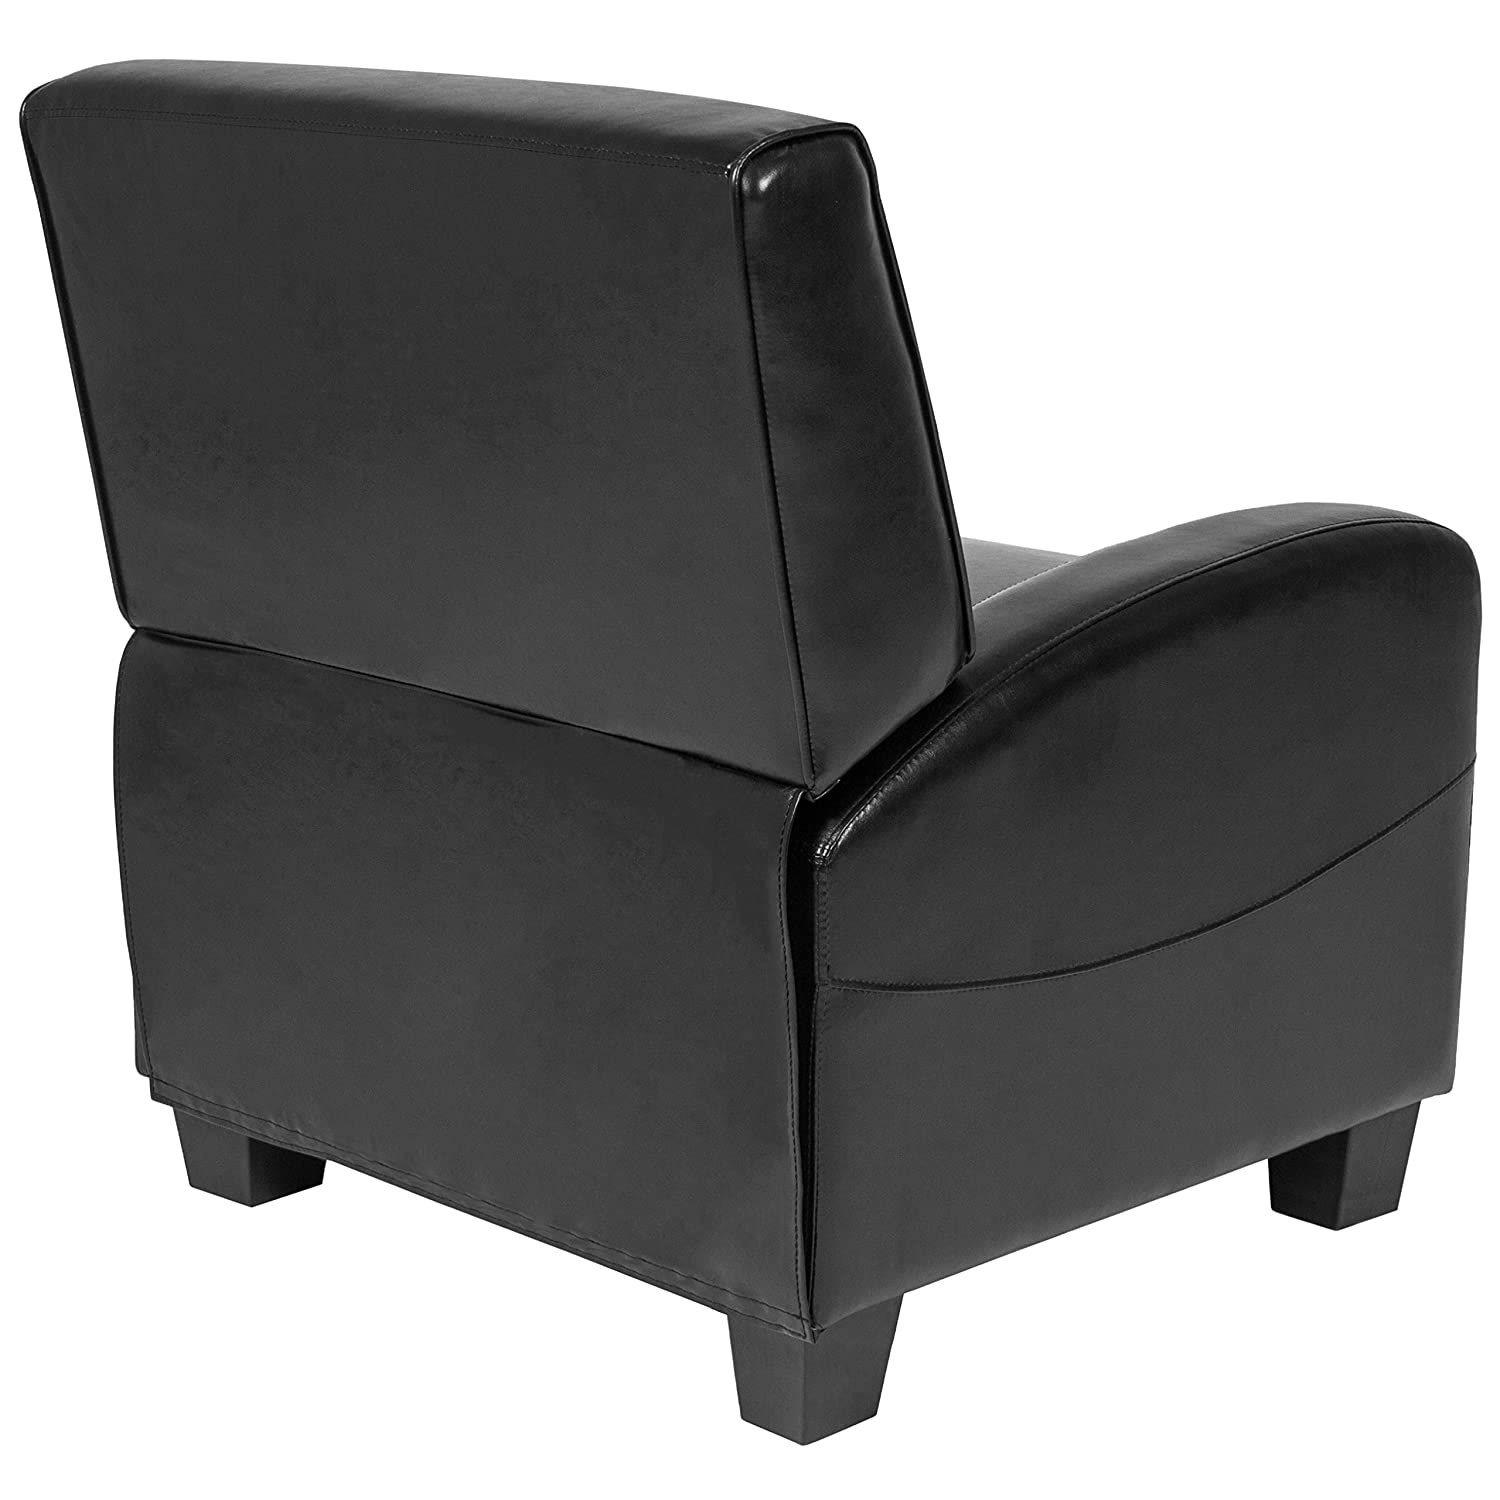 Amazon.com Best Choice Products Padded Upholstery Faux Leather Modern Single Recliner Chair for Living Room Home Theater - (Black) Kitchen u0026 Dining  sc 1 st  Amazon.com & Amazon.com: Best Choice Products Padded Upholstery Faux Leather ...